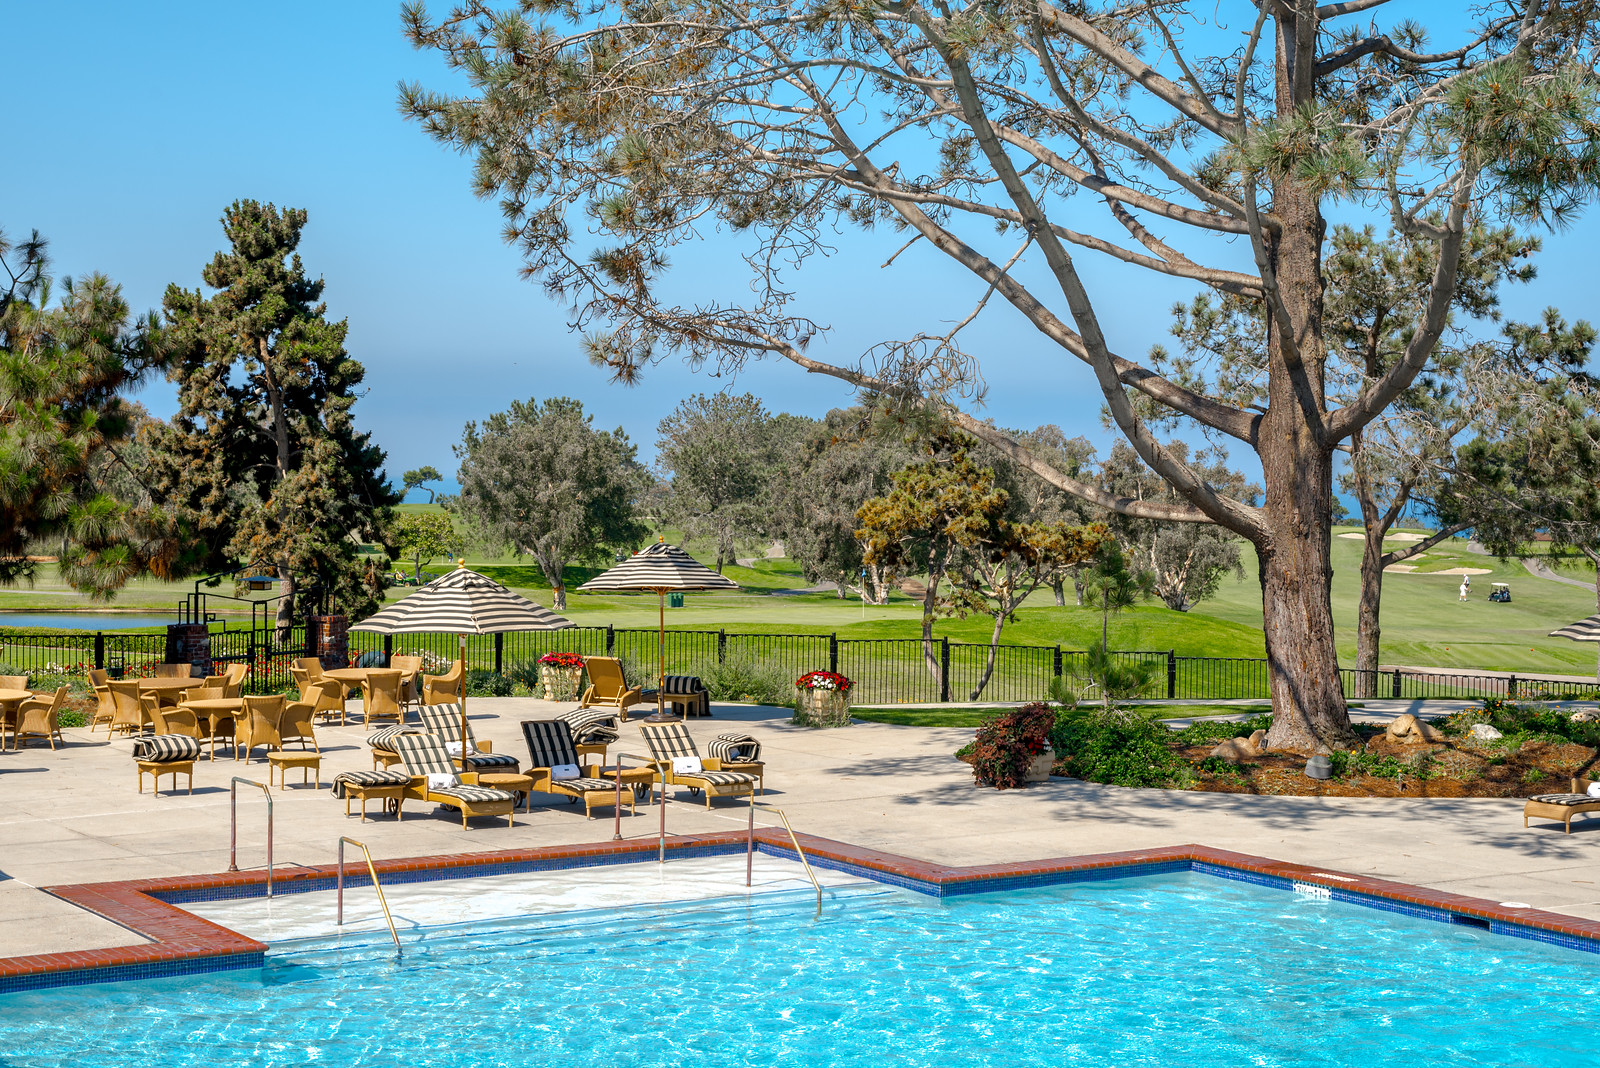 The pool at The Lodge at Torrey Pines in La Jolla